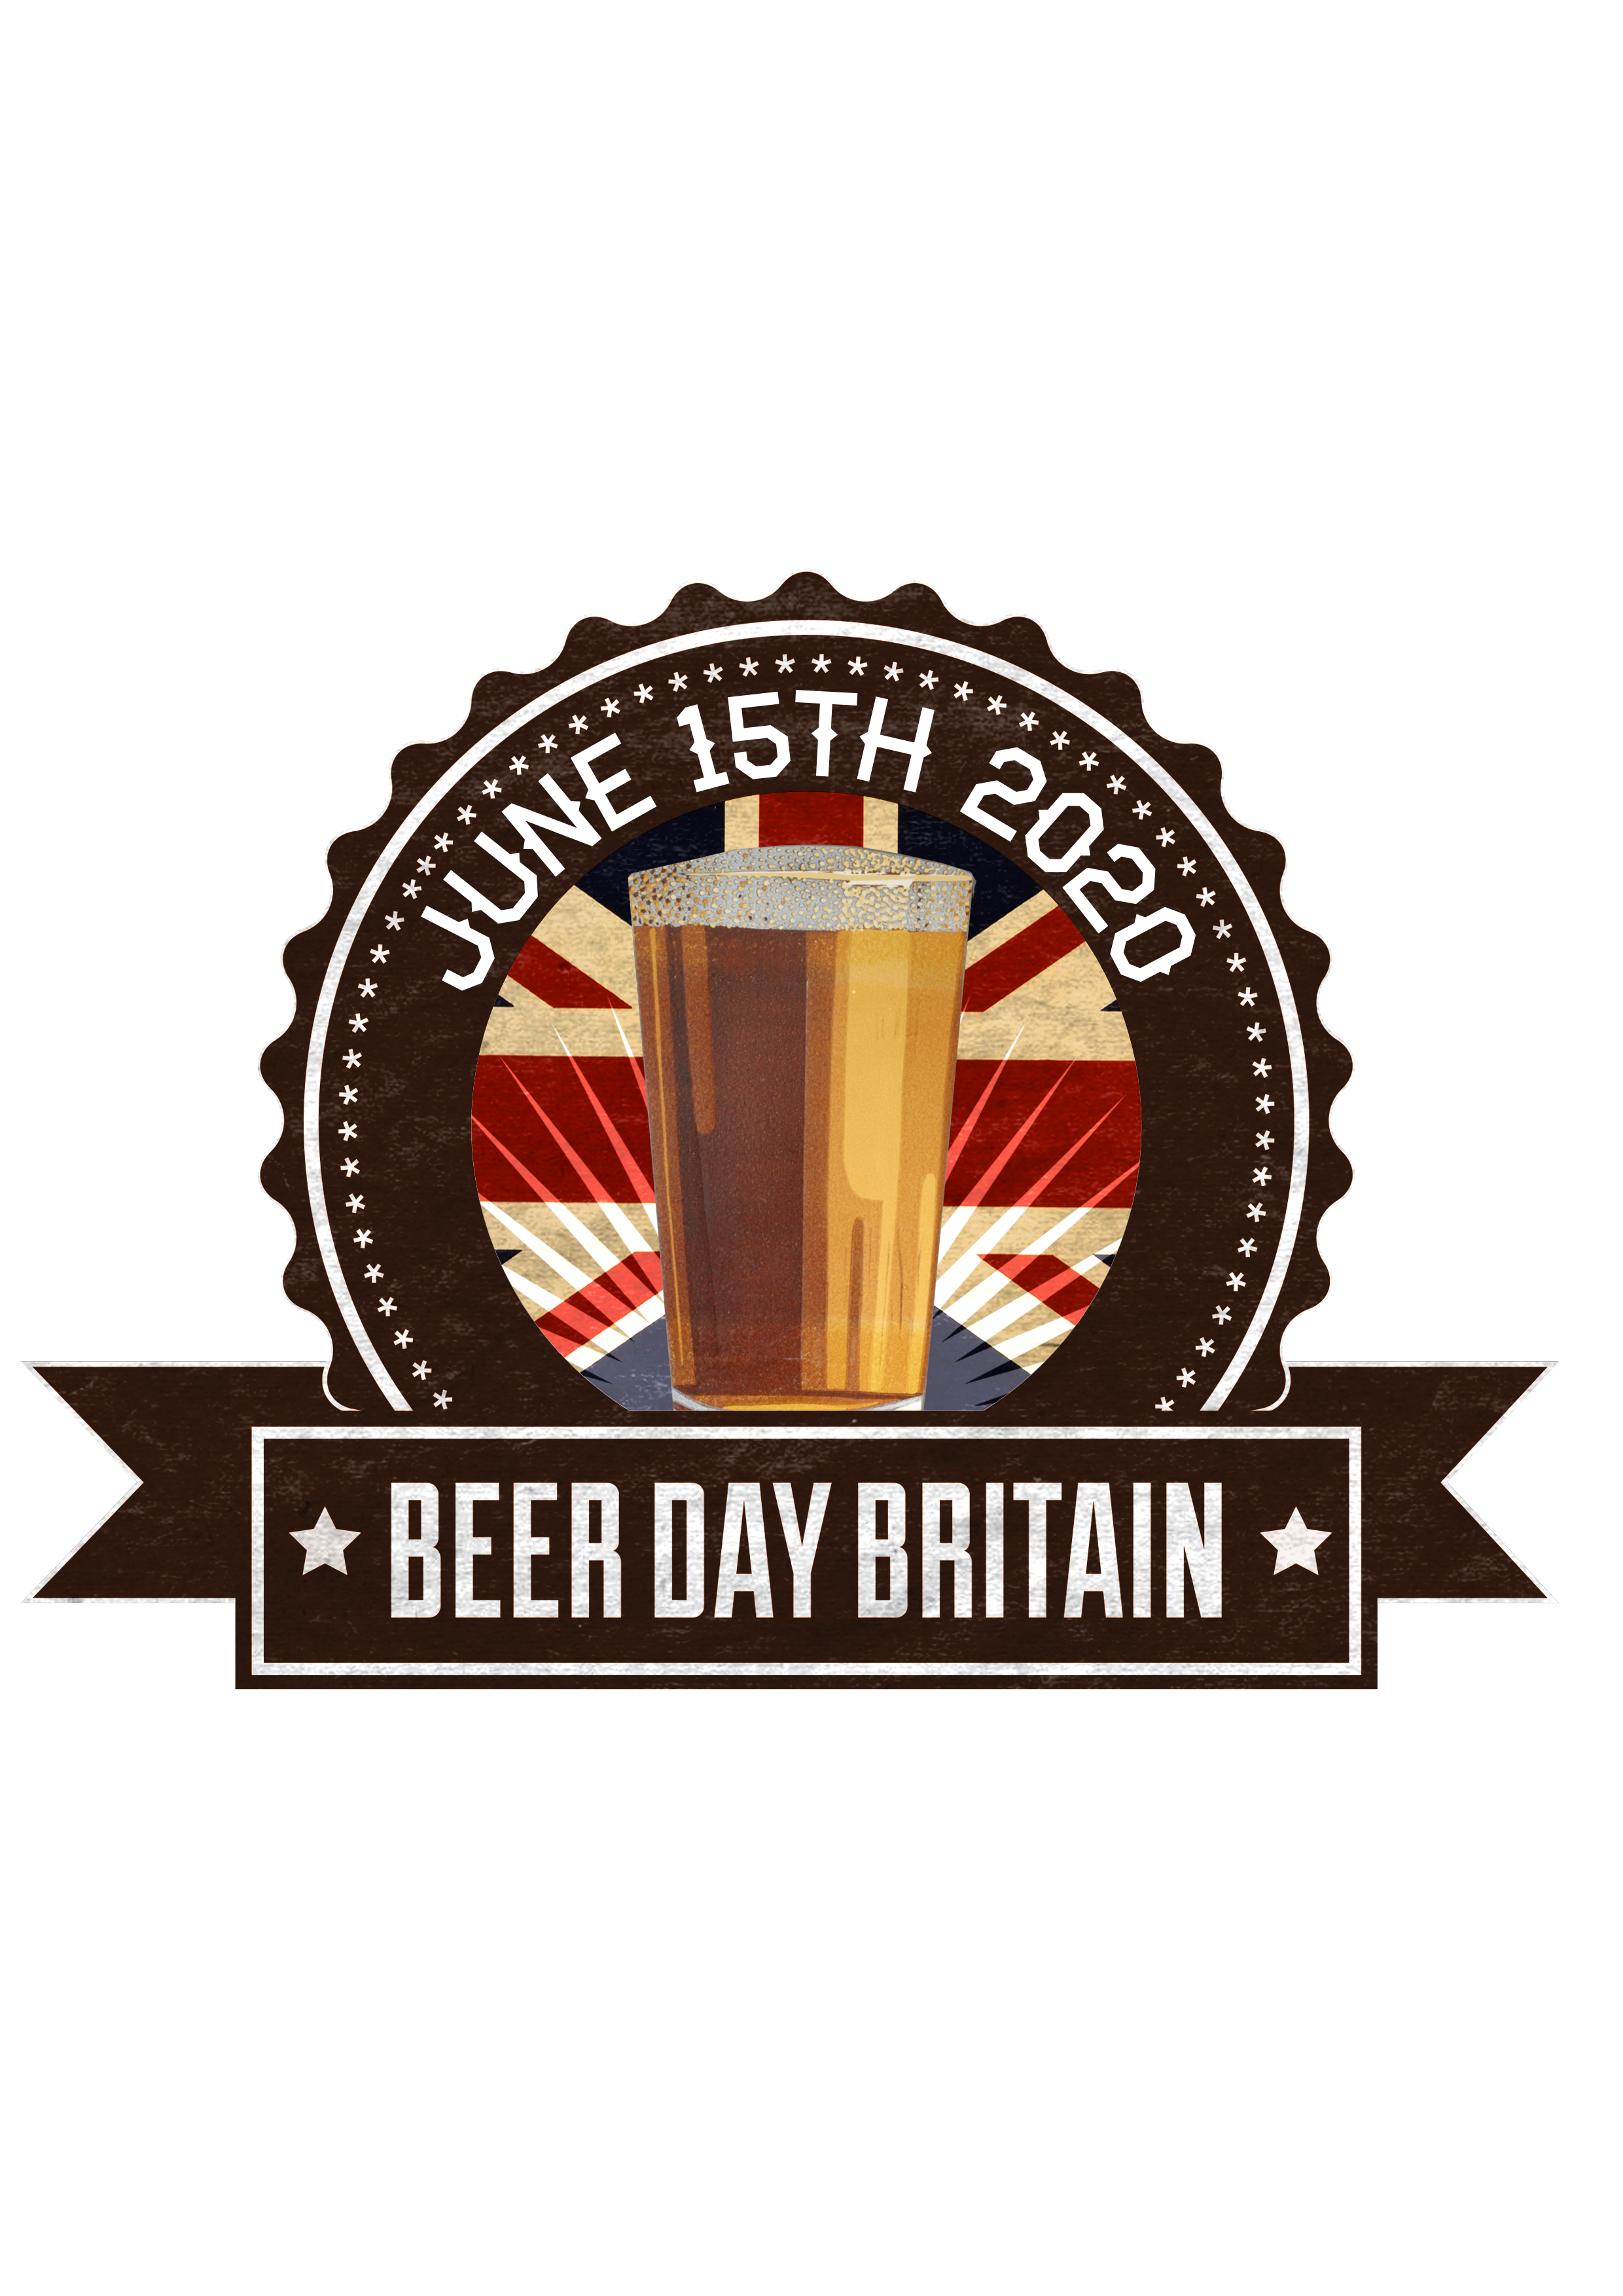 Celebrate Beer Day Britain